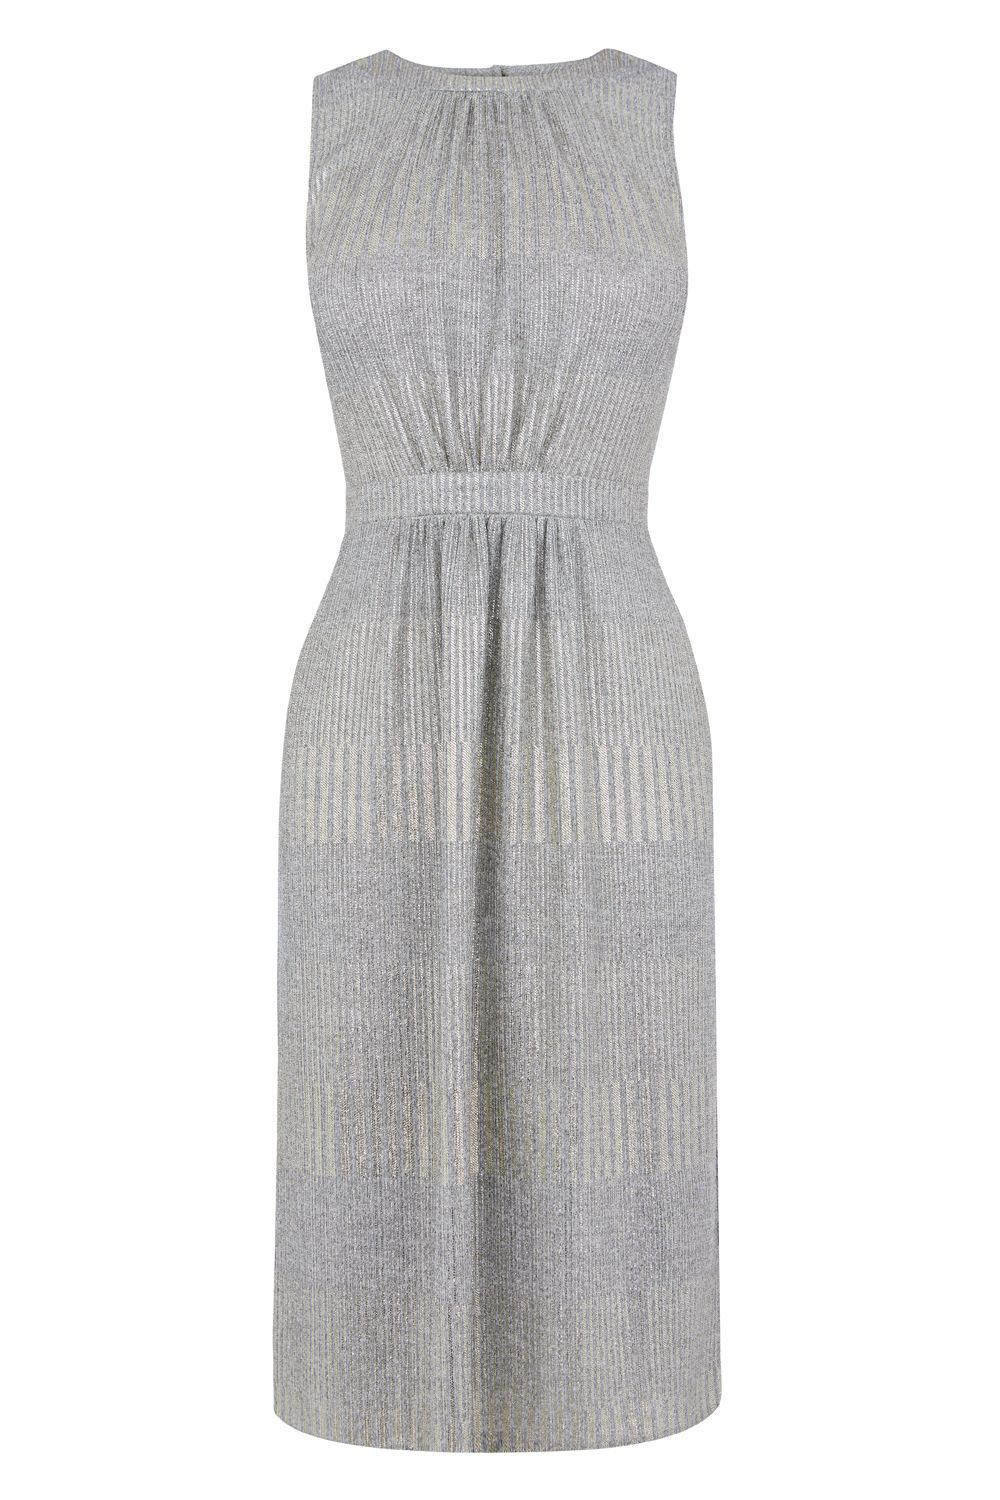 Oasis Geo Grecian Dress, Pewter